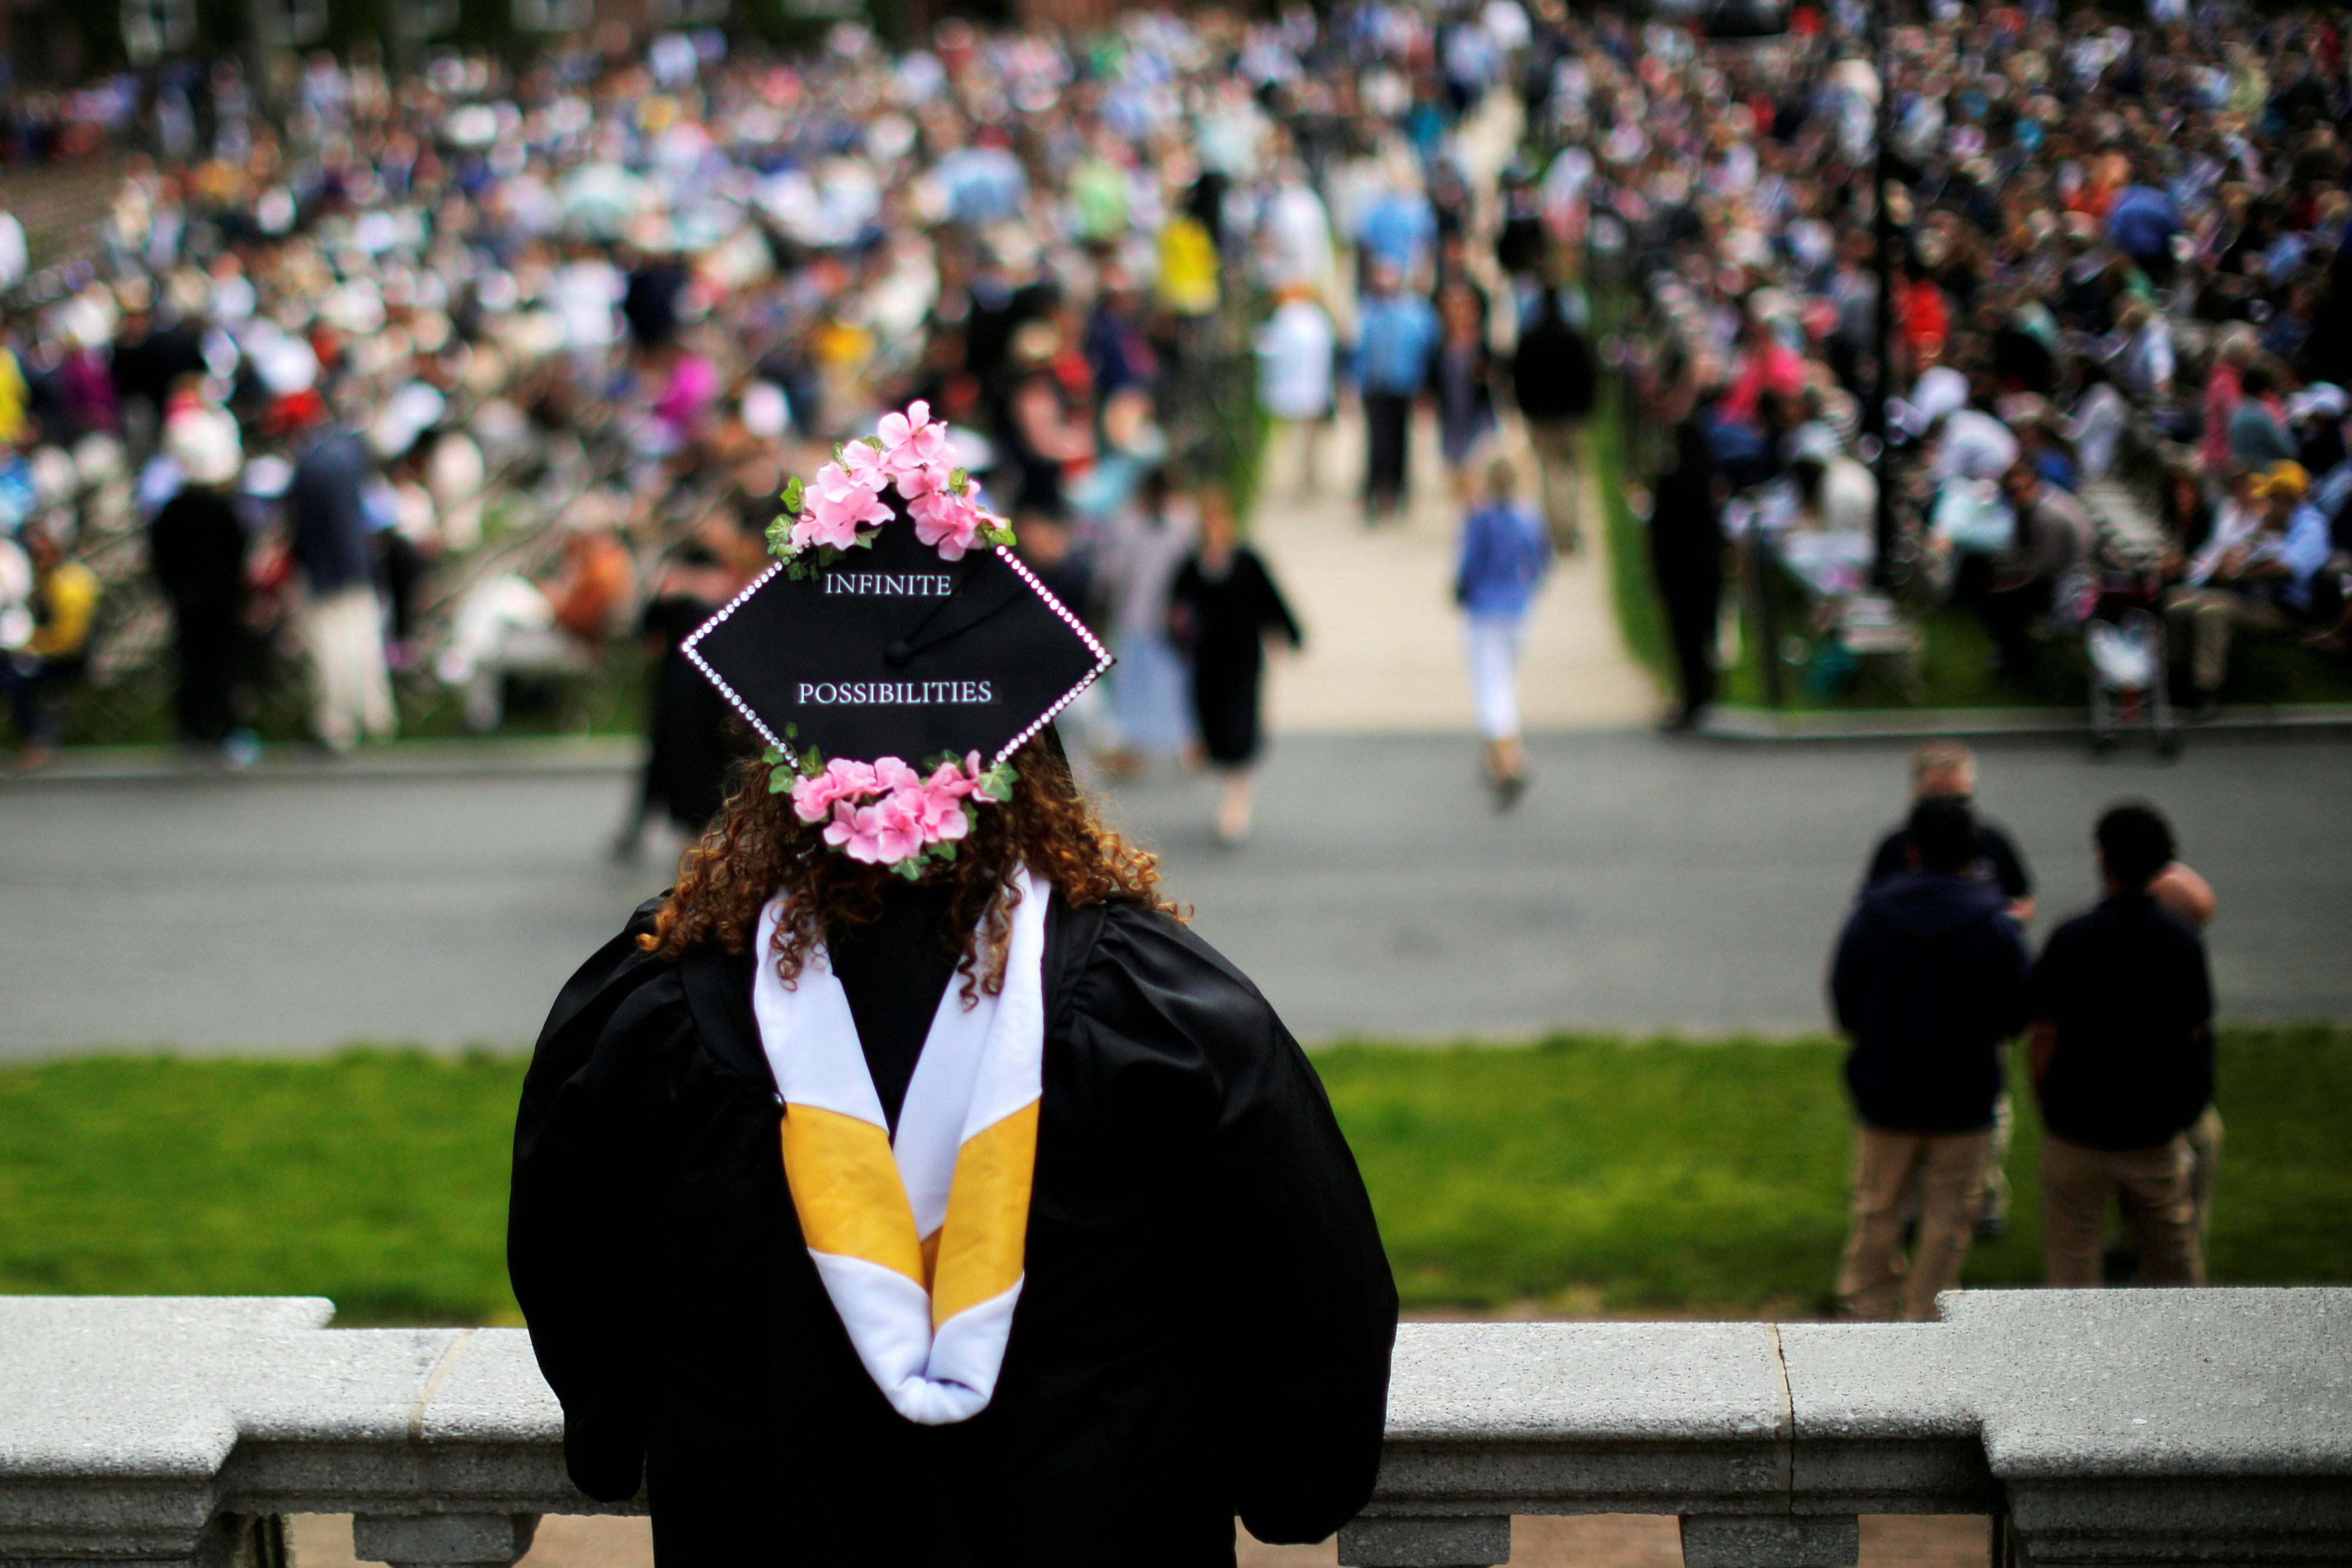 """A senior with """"Infinite Possibilities"""" written on her cap waits to graduate during Commencement at Smith College in Northampton, Massachusetts, U.S., May 21, 2017"""